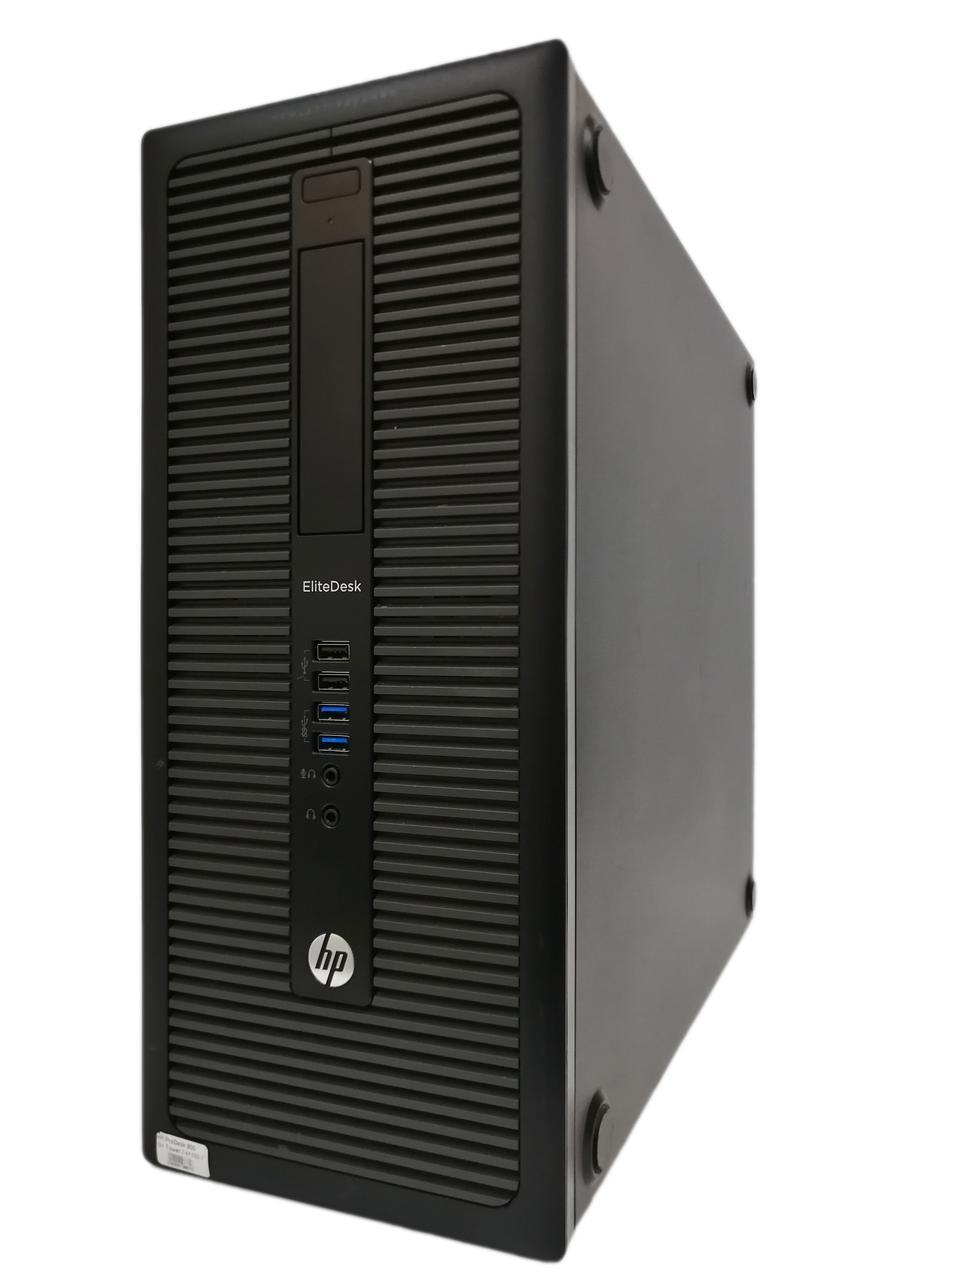 Компьютер HP EliteDesk 800 G1 Tower, Intel Core i7-4770, 16ГБ DDR3, SSD 240ГБ